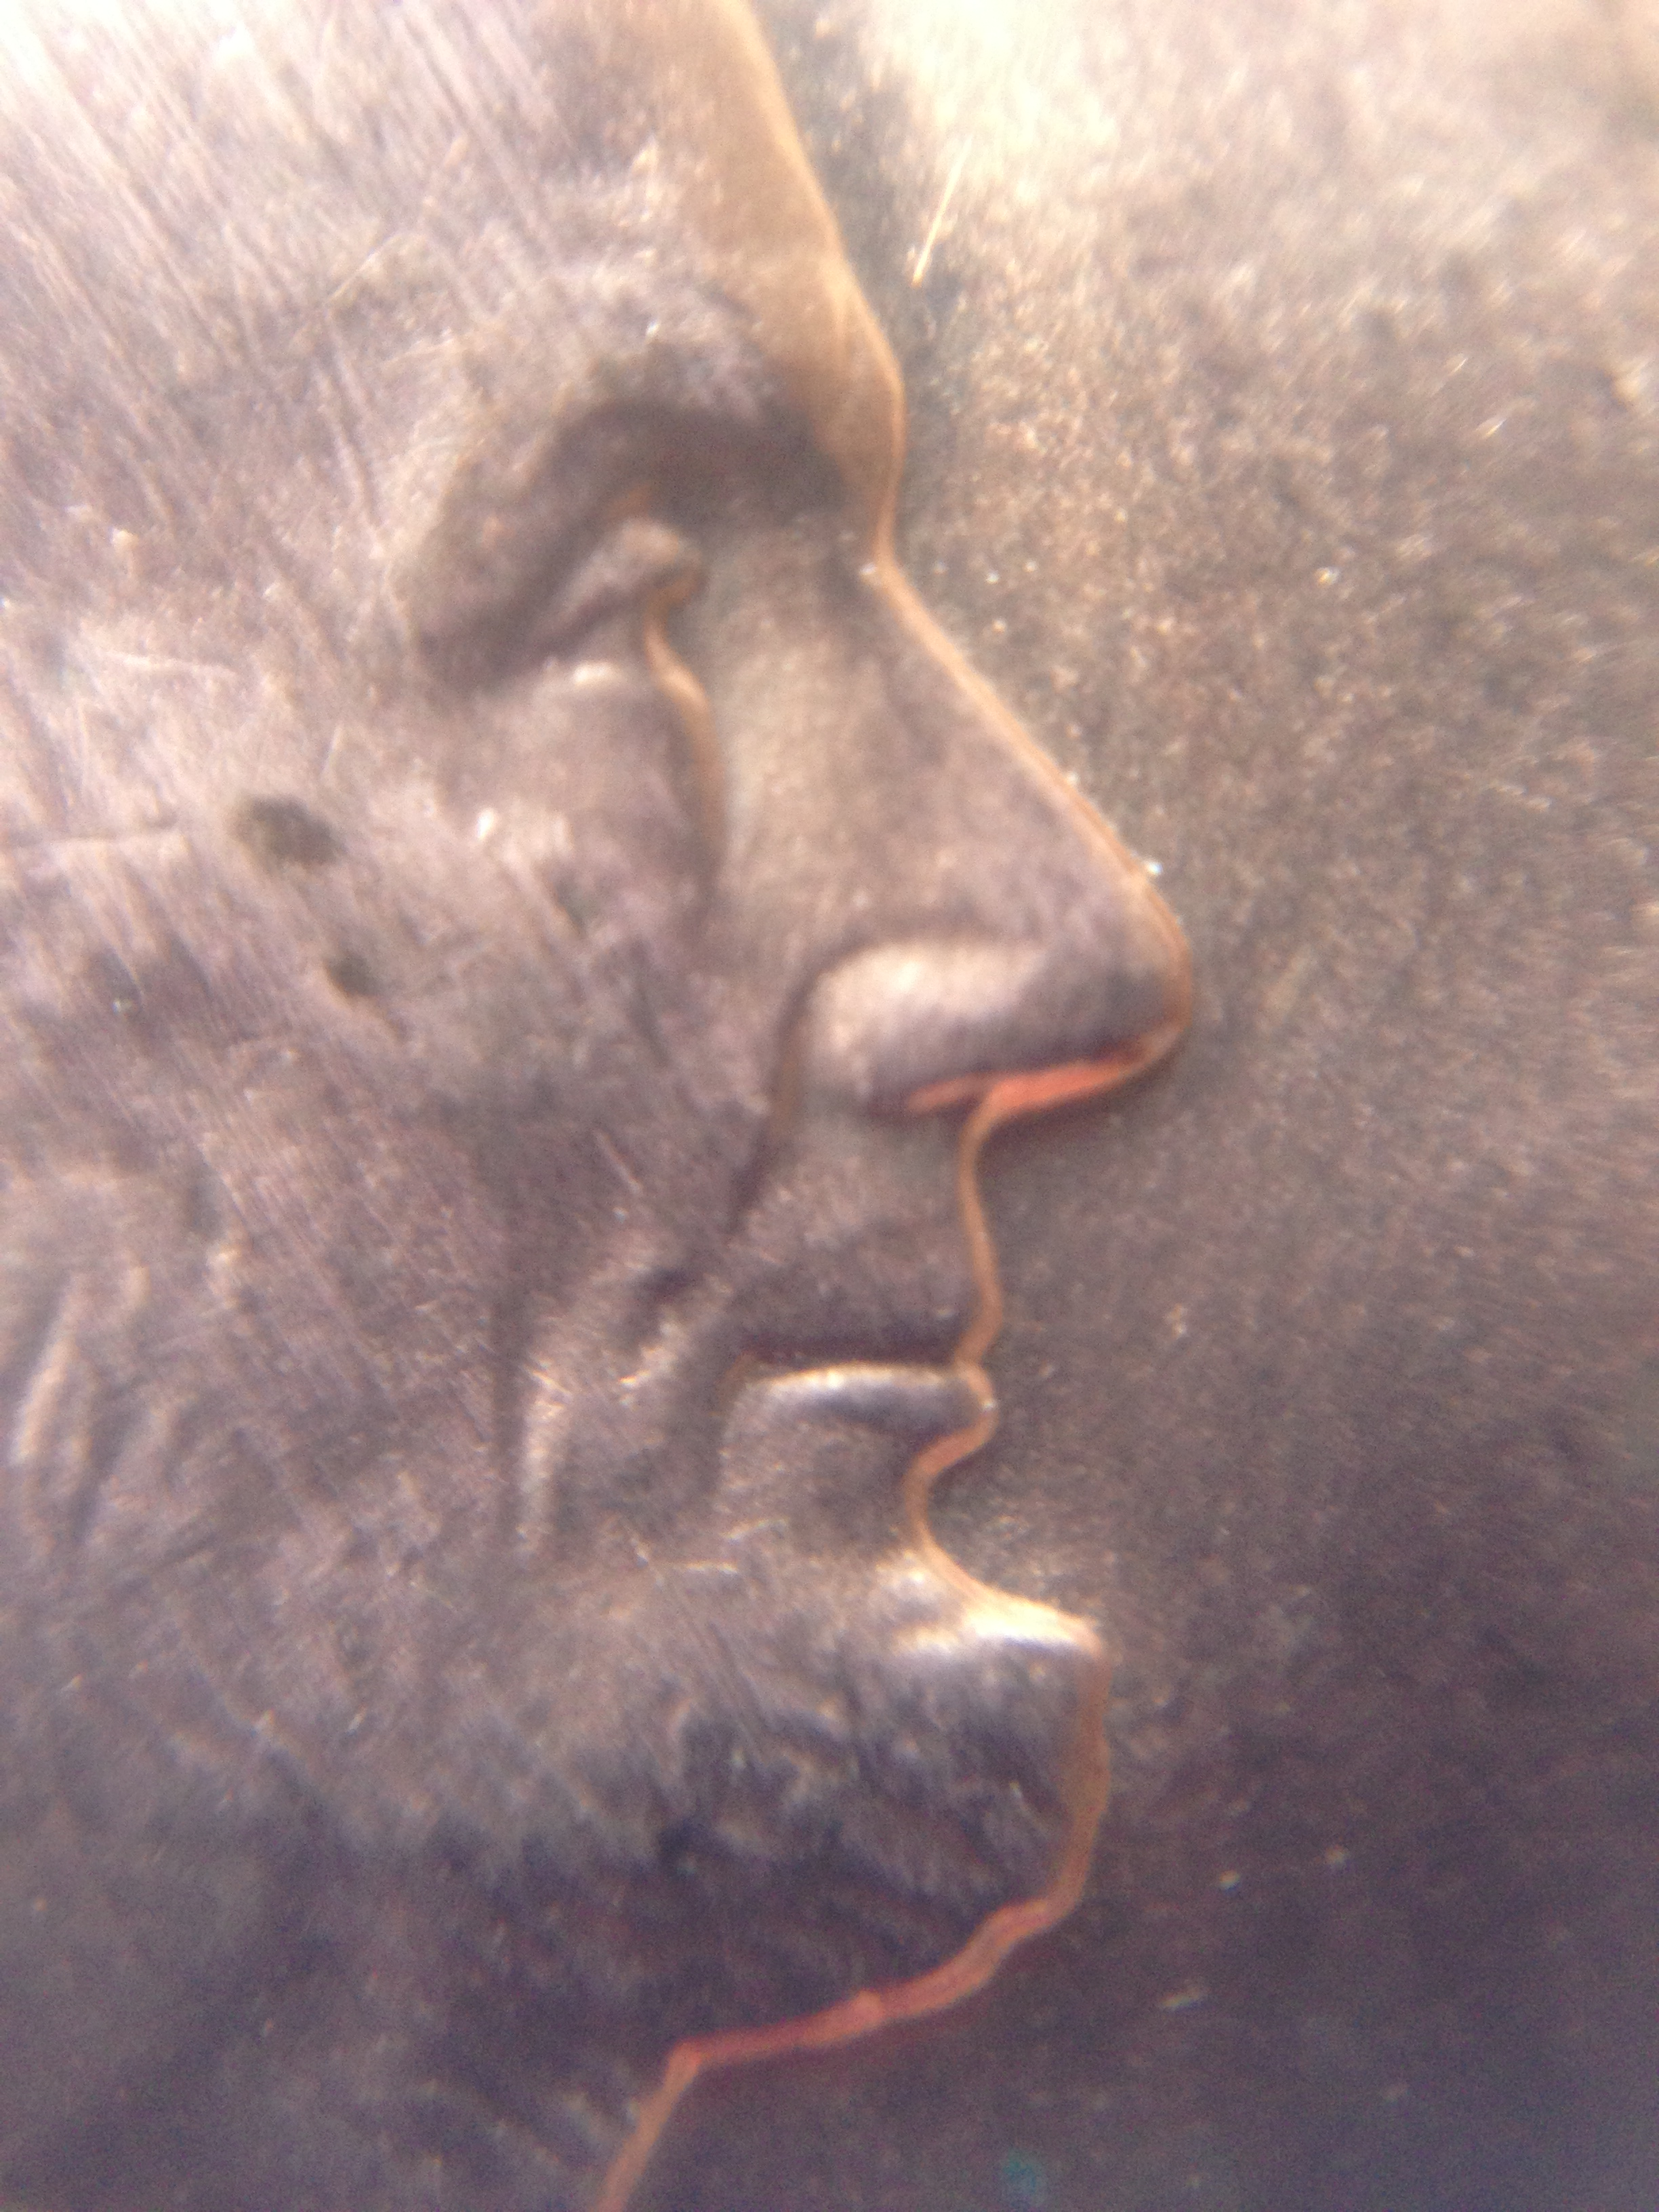 A penny magnified 15 times.